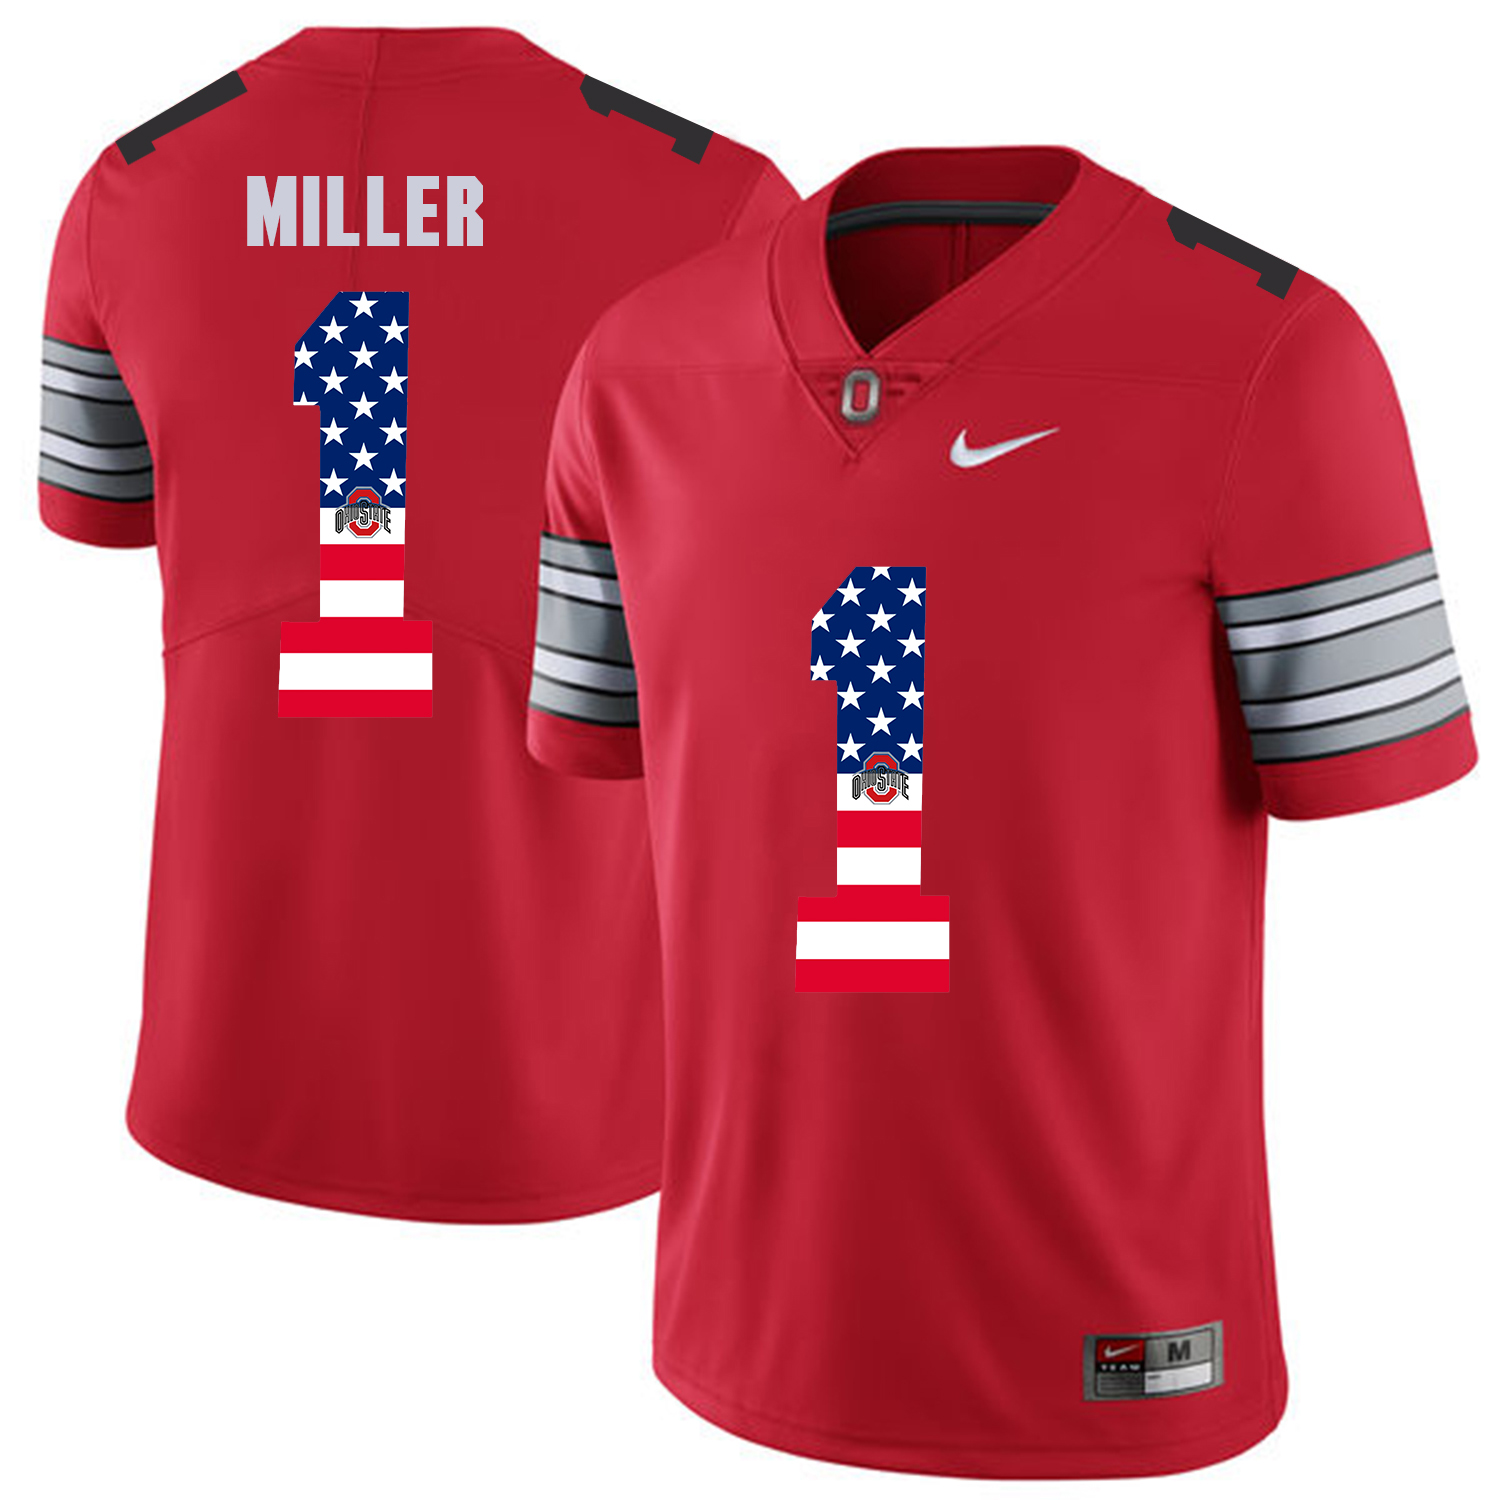 Men Ohio State 1 Miller Red Flag Customized NCAA Jerseys